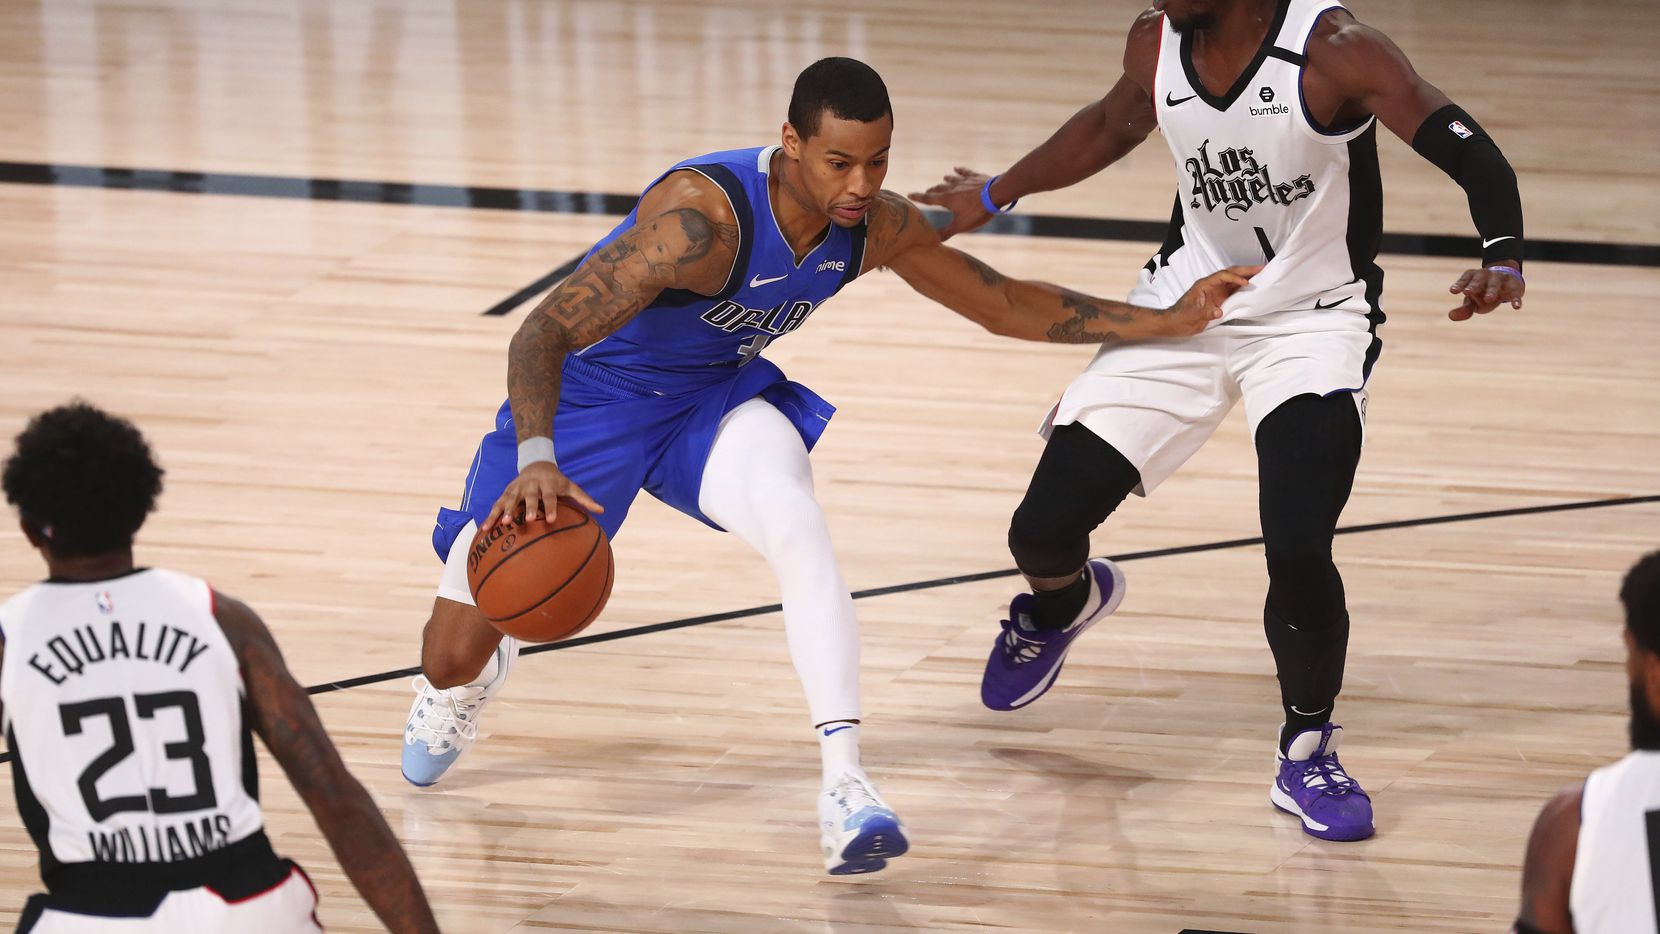 Dallas Mavericks guard Trey Burke (32) drives against Los Angeles Clippers guard Reggie Jackson (1) during the second half of Game 5 of an NBA basketball first-round playoff series, Tuesday, Aug. 25, 2020, in Lake Buena Vista, Fla.